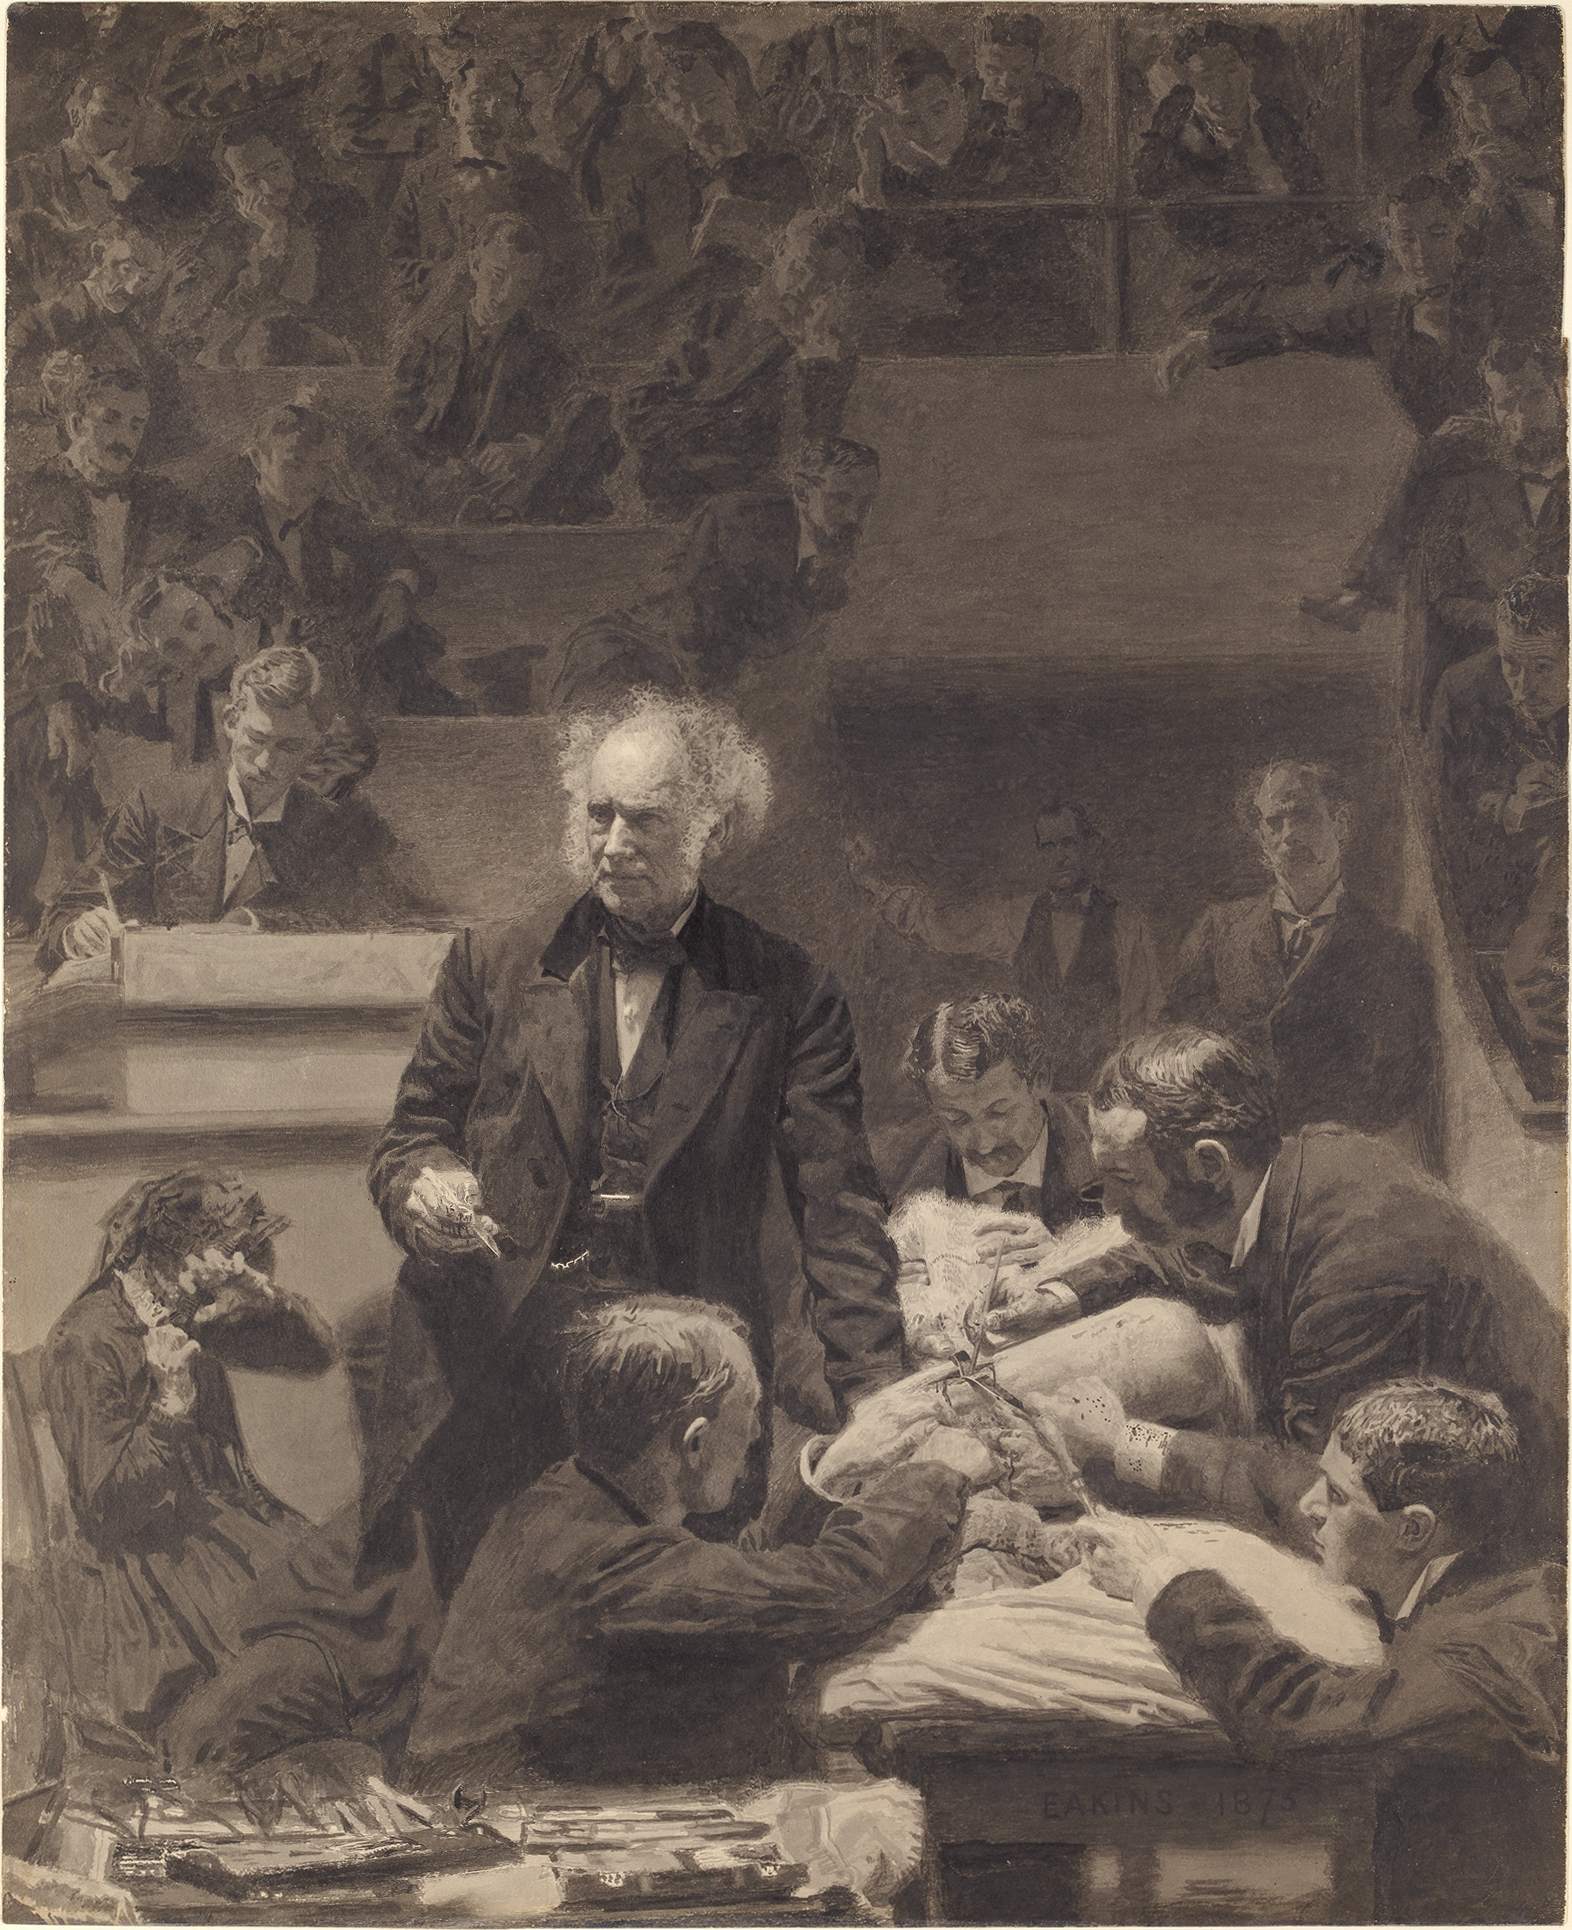 the gross clinic 20 x 25 thomas eakins the gross clinic premium canvas print reproduced to meet museum quality standards our museum quality canvas prints are produced using high-precision print technology for a more accurate reproduction printed on high quality canvas with fade-resistant, archival inks.